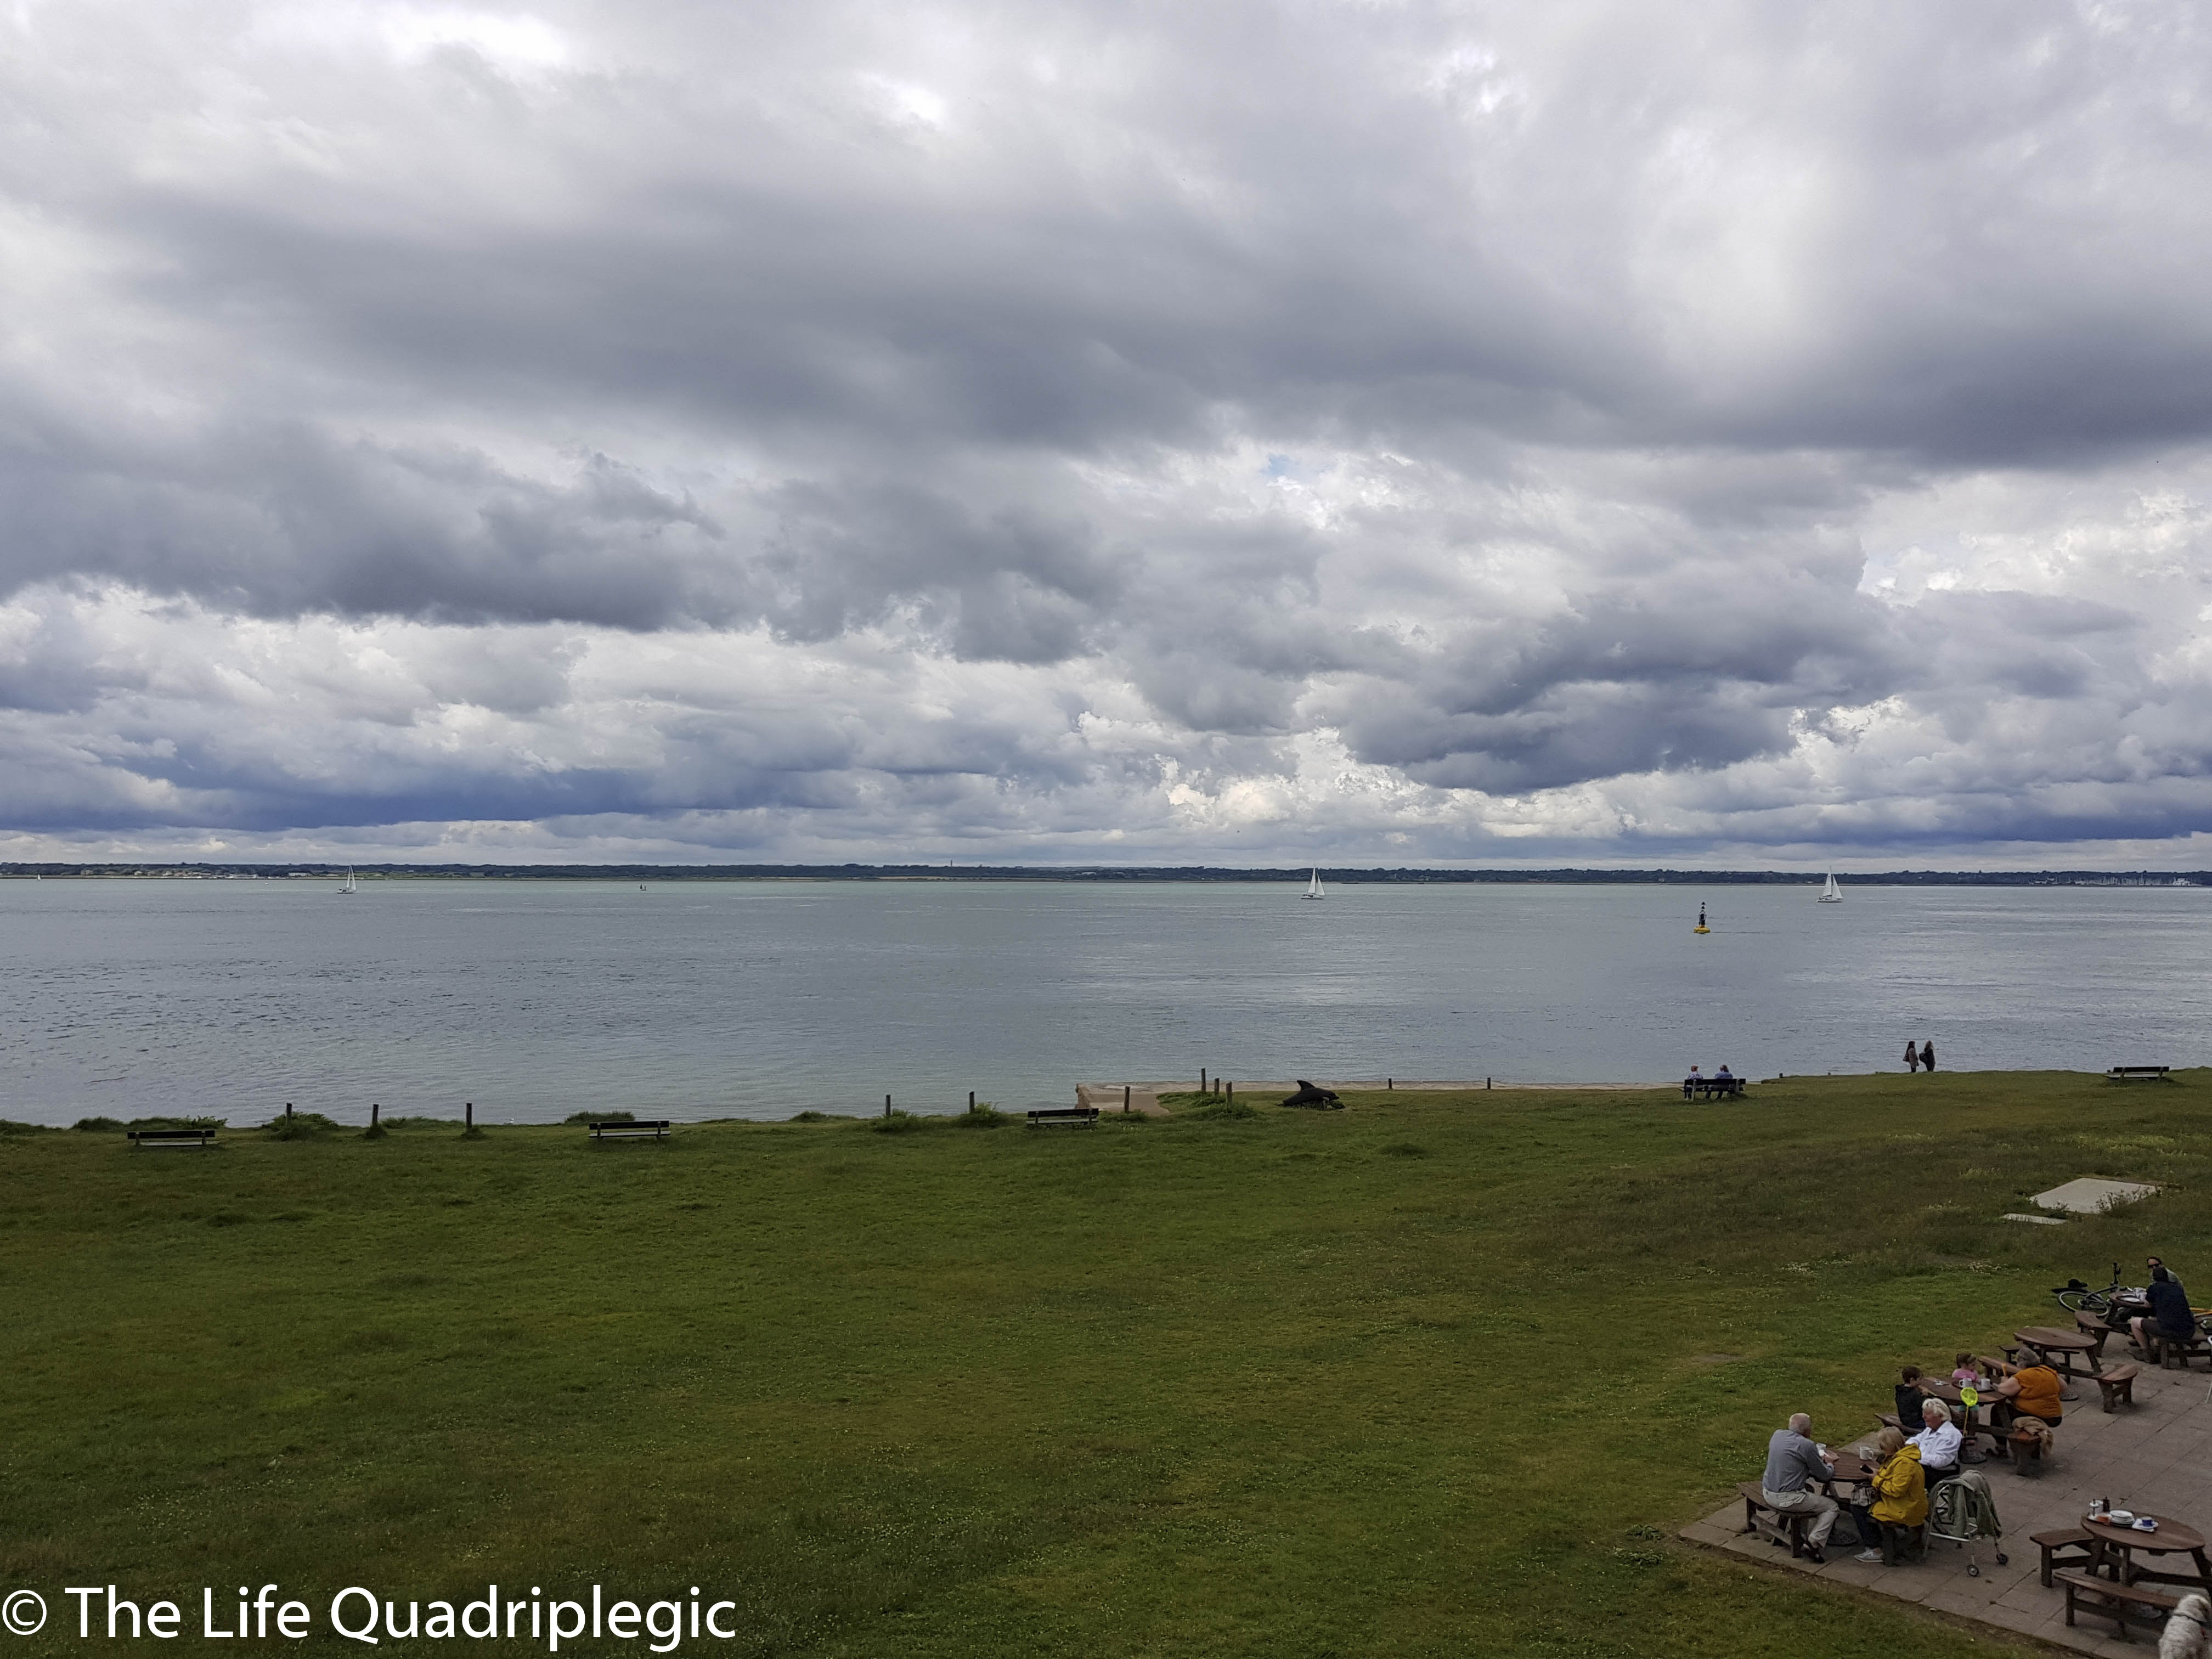 Looking out to the calm waters of the Solent with grass in the foreground